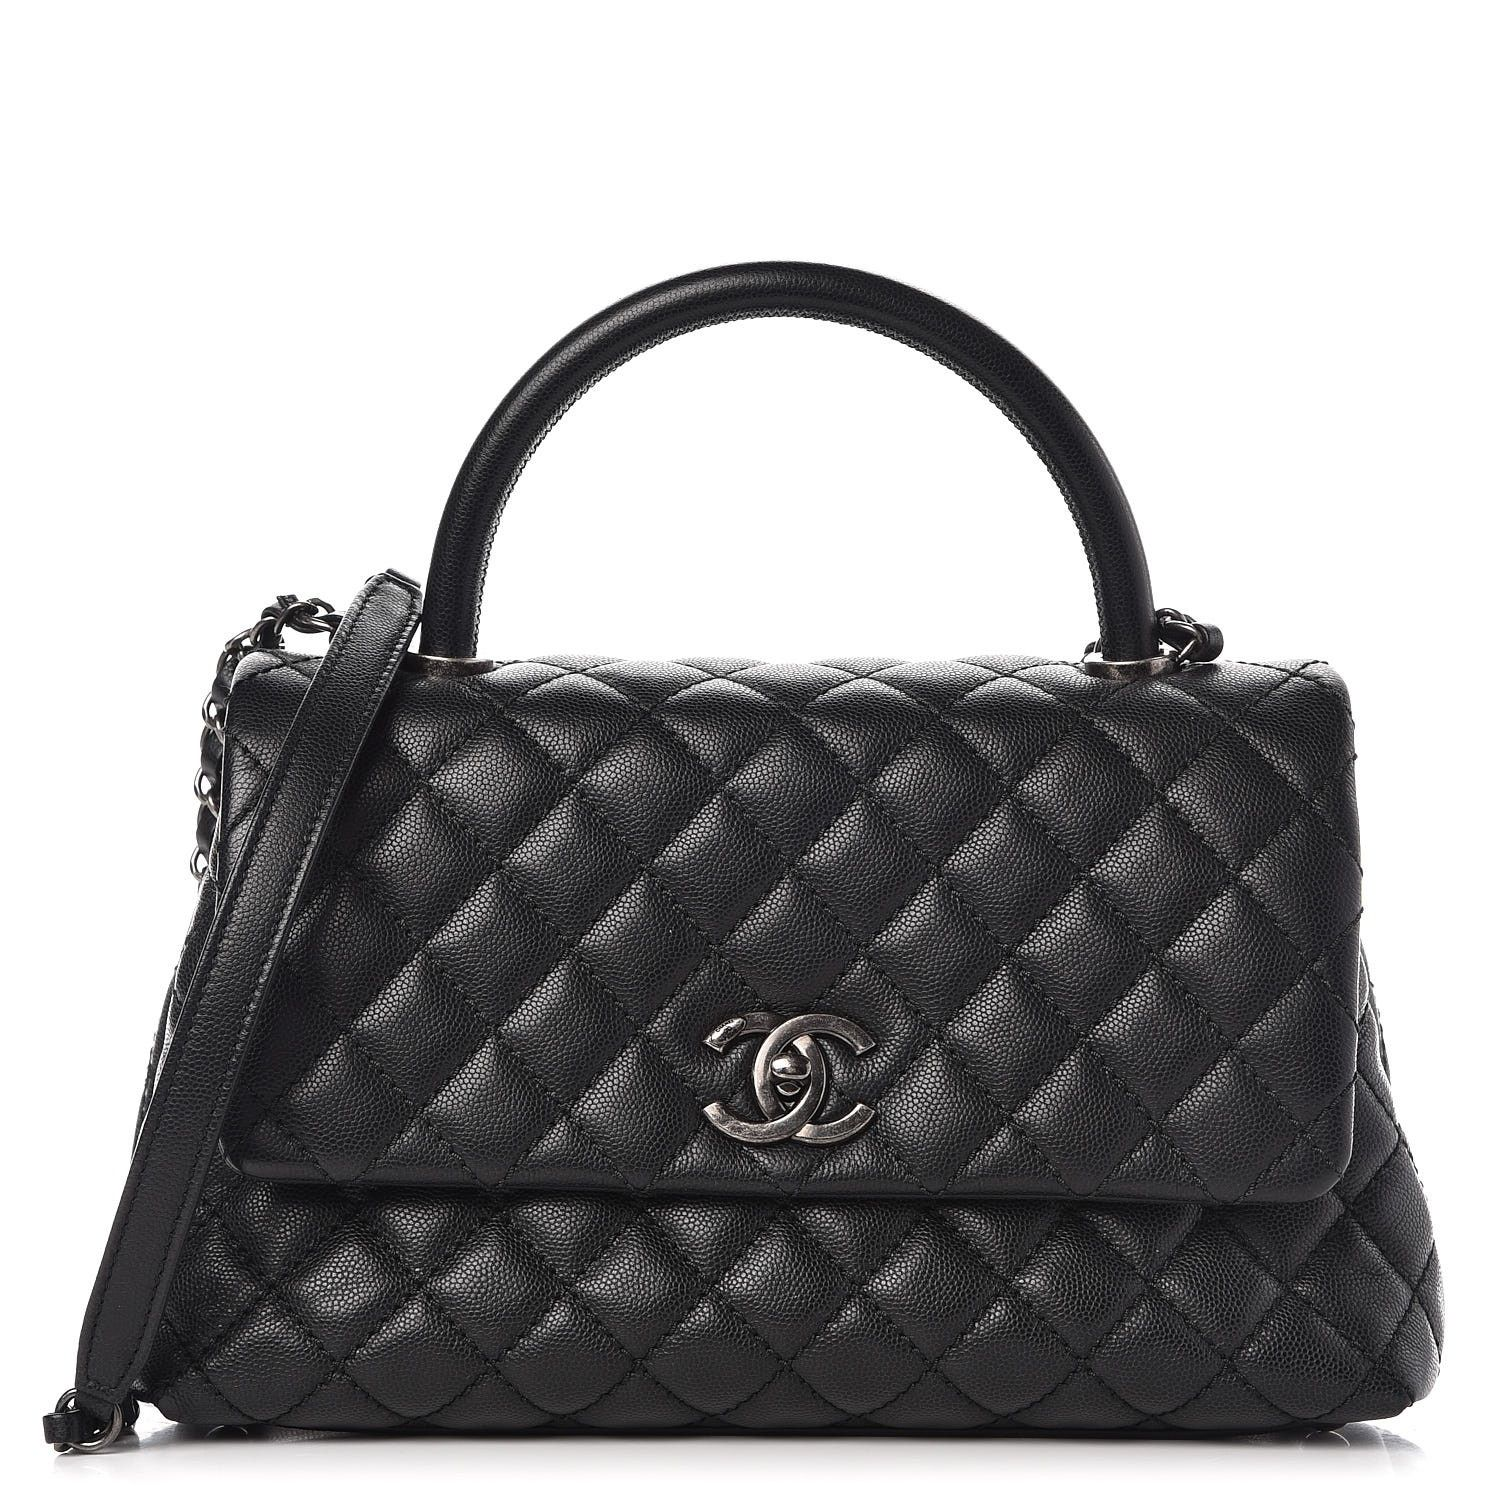 CHANEL Caviar Quilted Small Coco Handle Flap Black